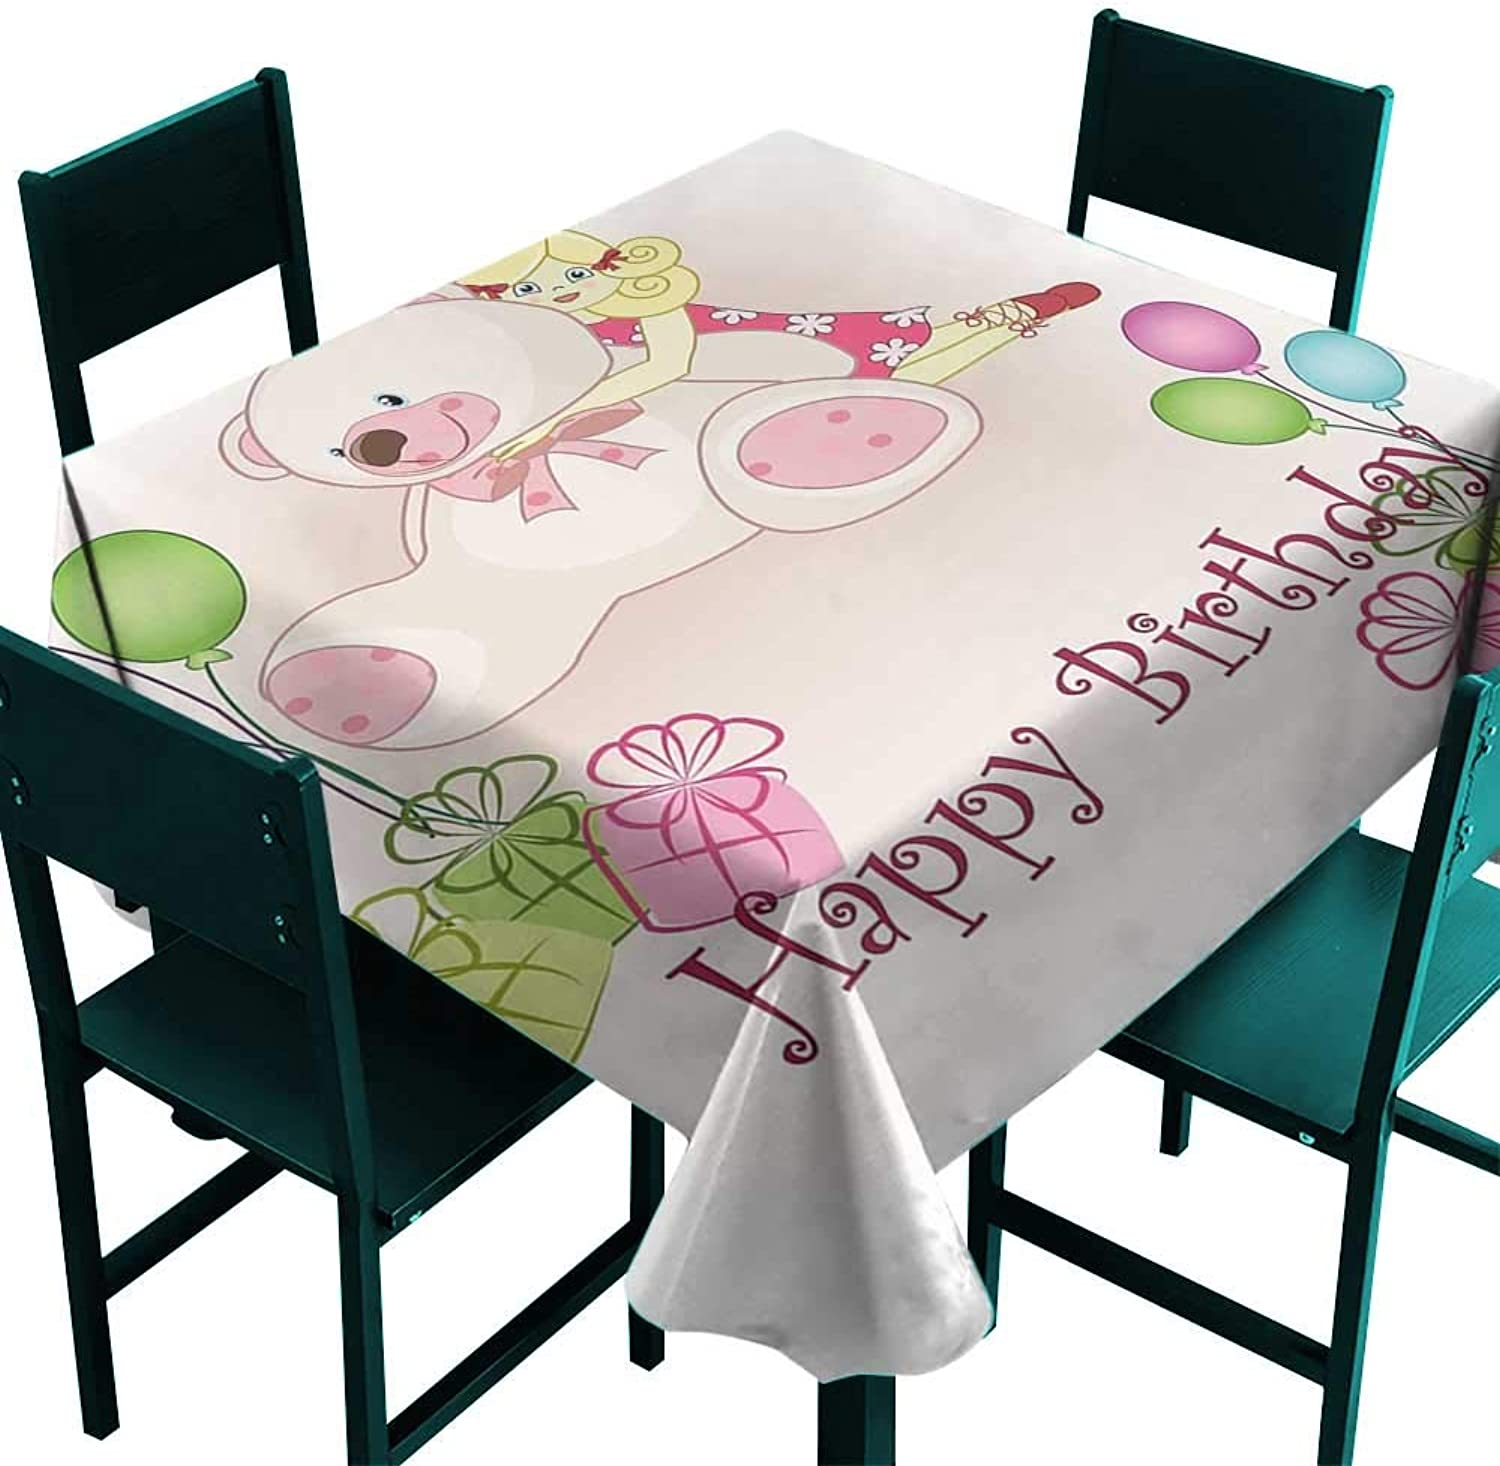 Warm Family Kids Birthday Elegance Engineered Tablecloth Baby Girl Birthday with Teddy Bears Toys Balloons Surprise Boxes Dolls Image Indoor Outdoor Camping Picnic W70 x L70